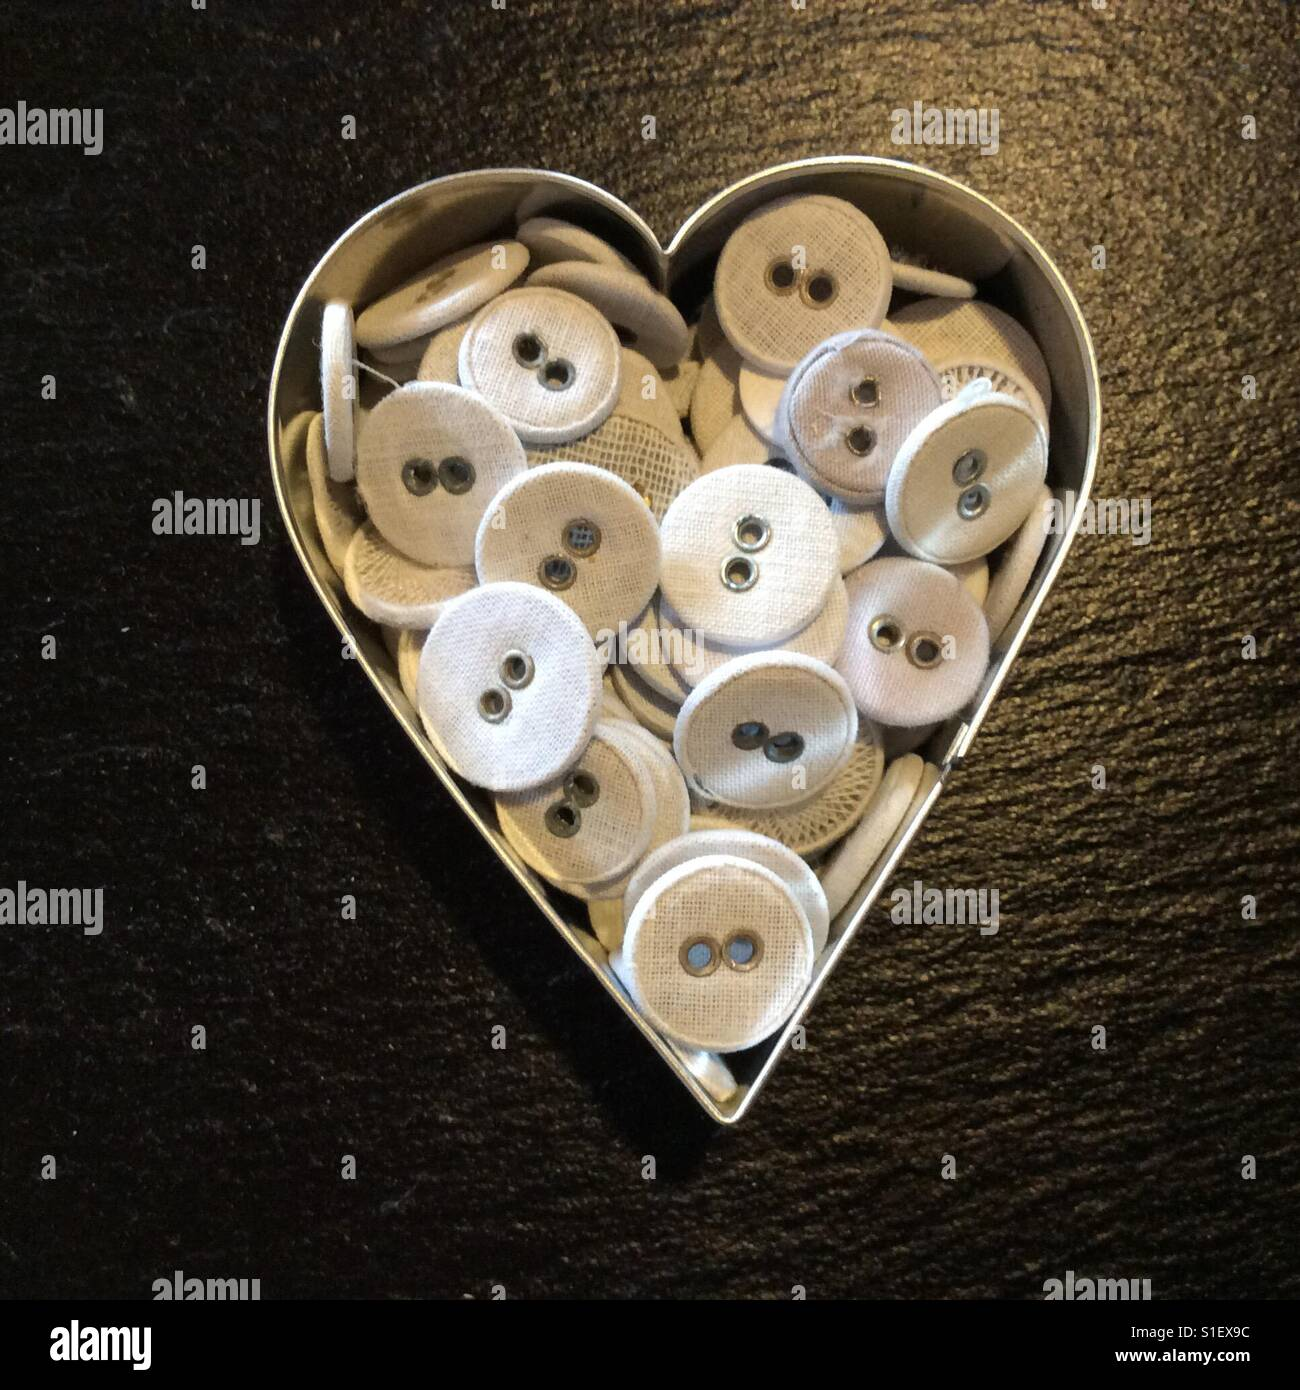 Heart shaped box with white buttons - Stock Image